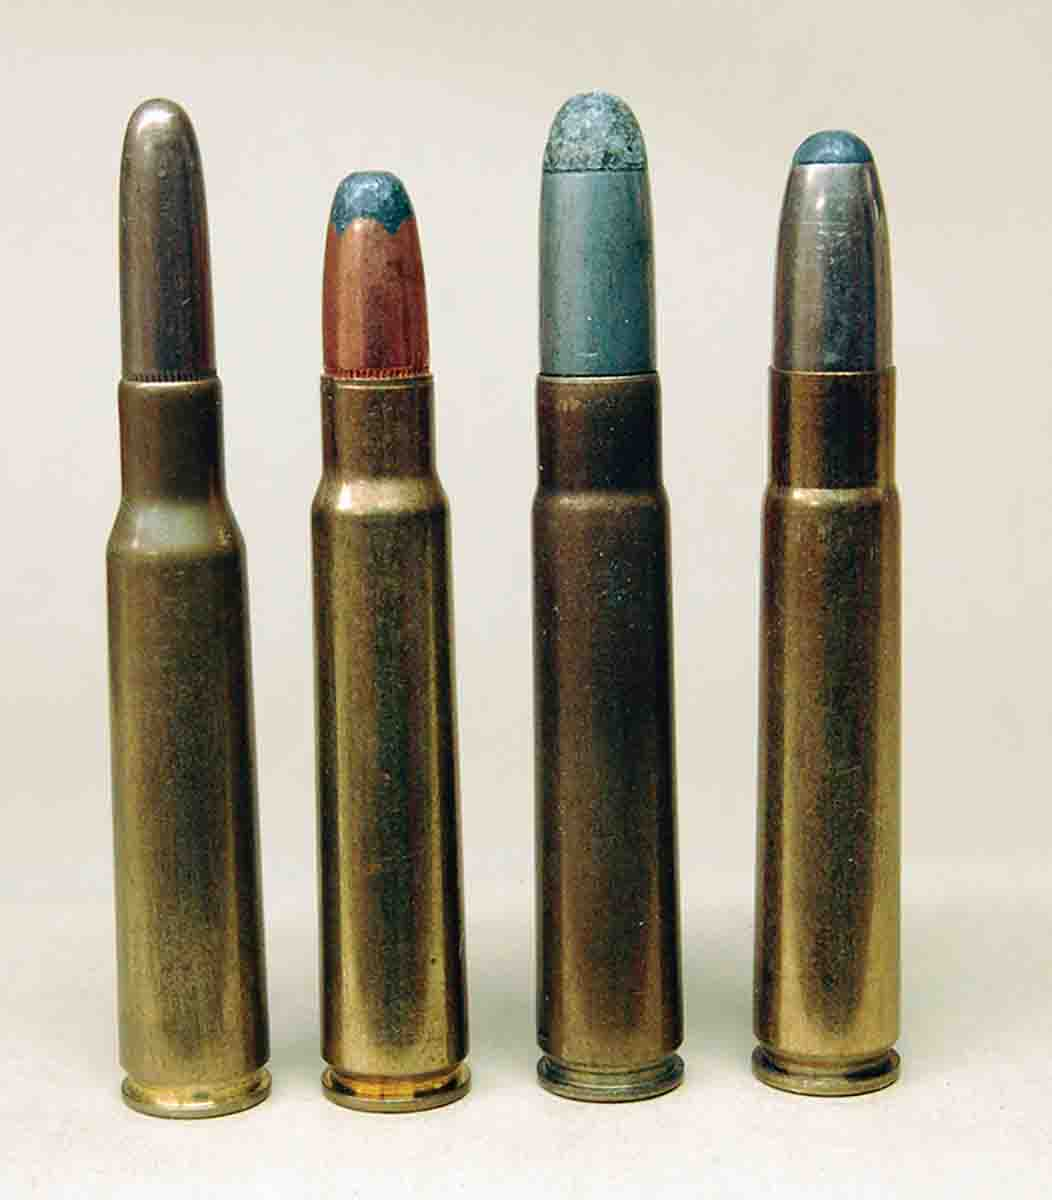 Common cartridges in the M88 series include (left to right): the 7x57, 8x57, 9x57 and the 9.3x57.